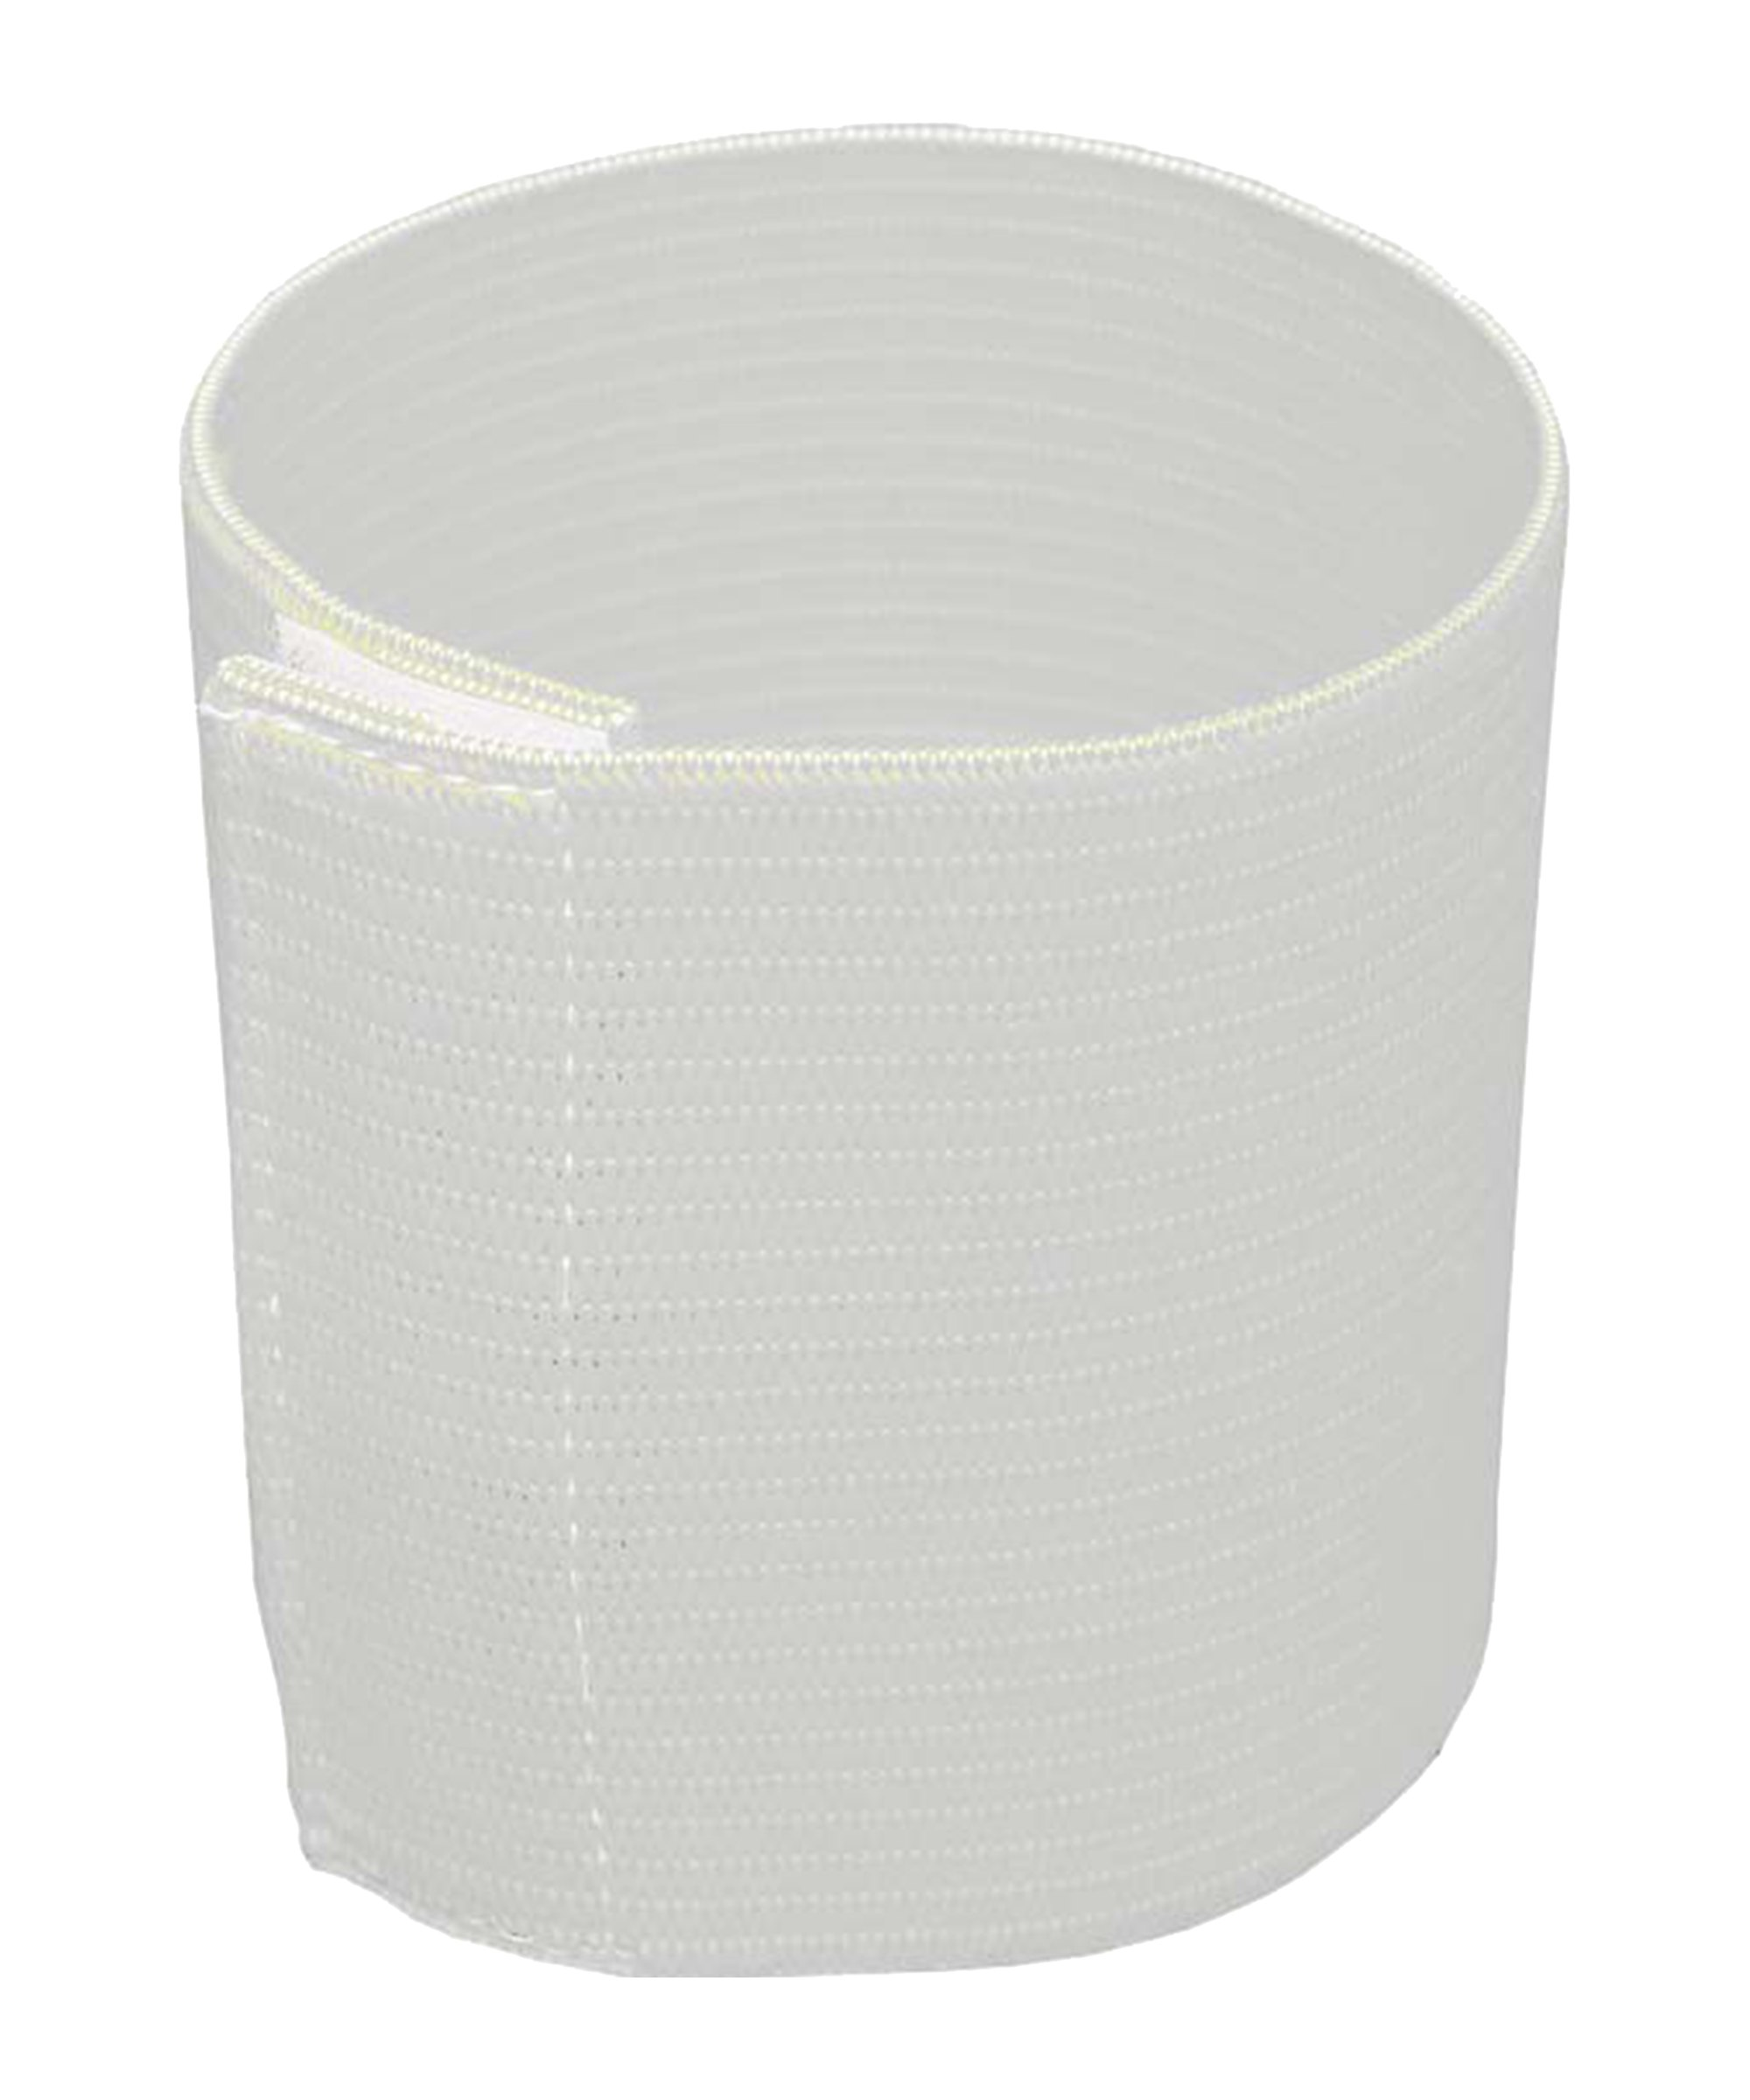 Cawila PRO UNI Armbinde Senior Weiss - weiss